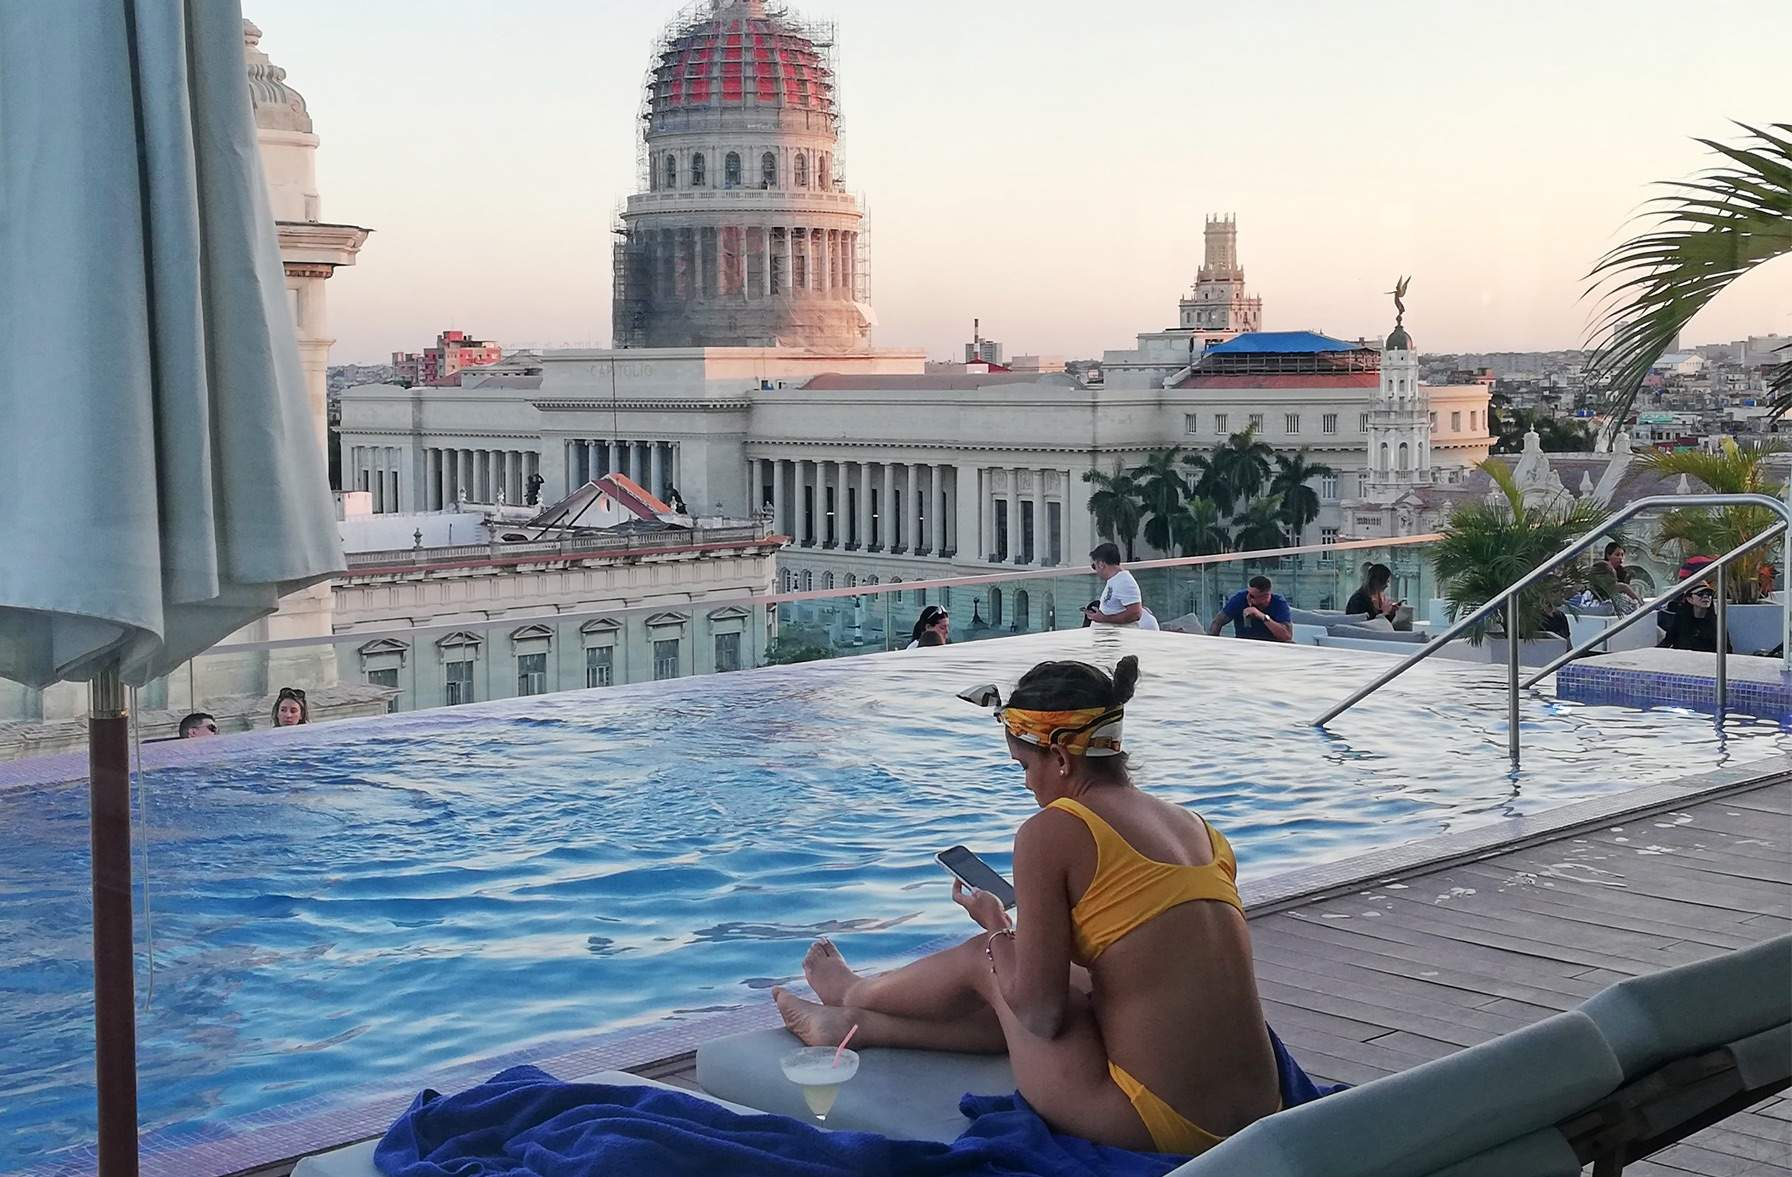 Swimming pool in Havana's rooftop